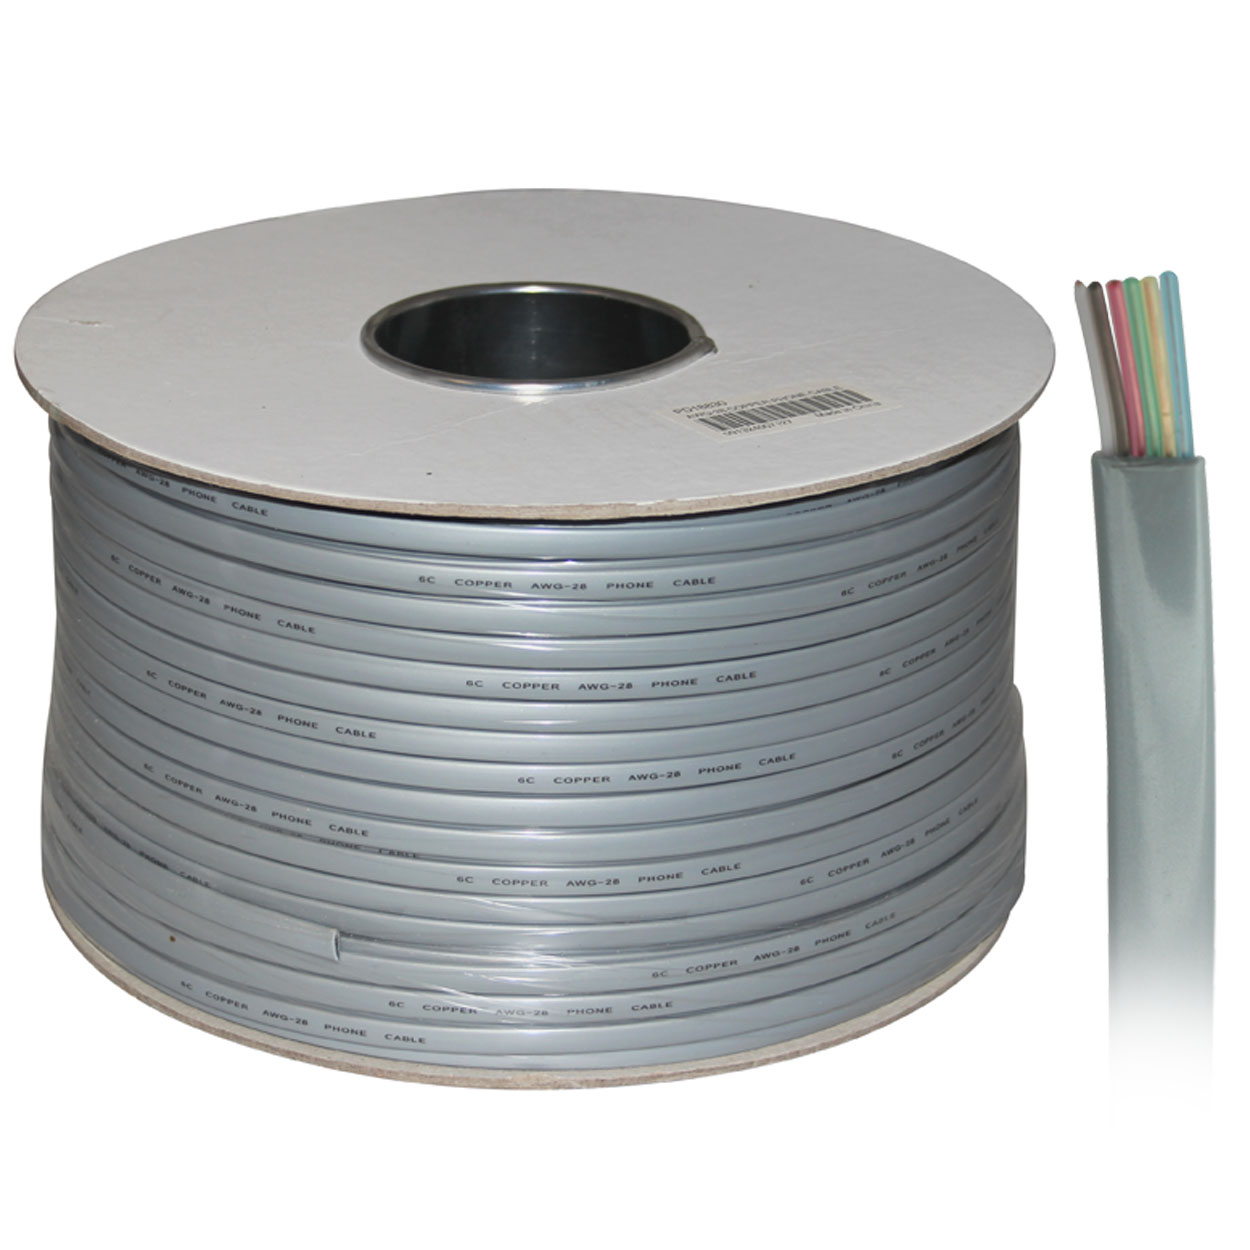 1000ft 6-Conductor Bulk Phone Cable, 28AWG, Silver Satin